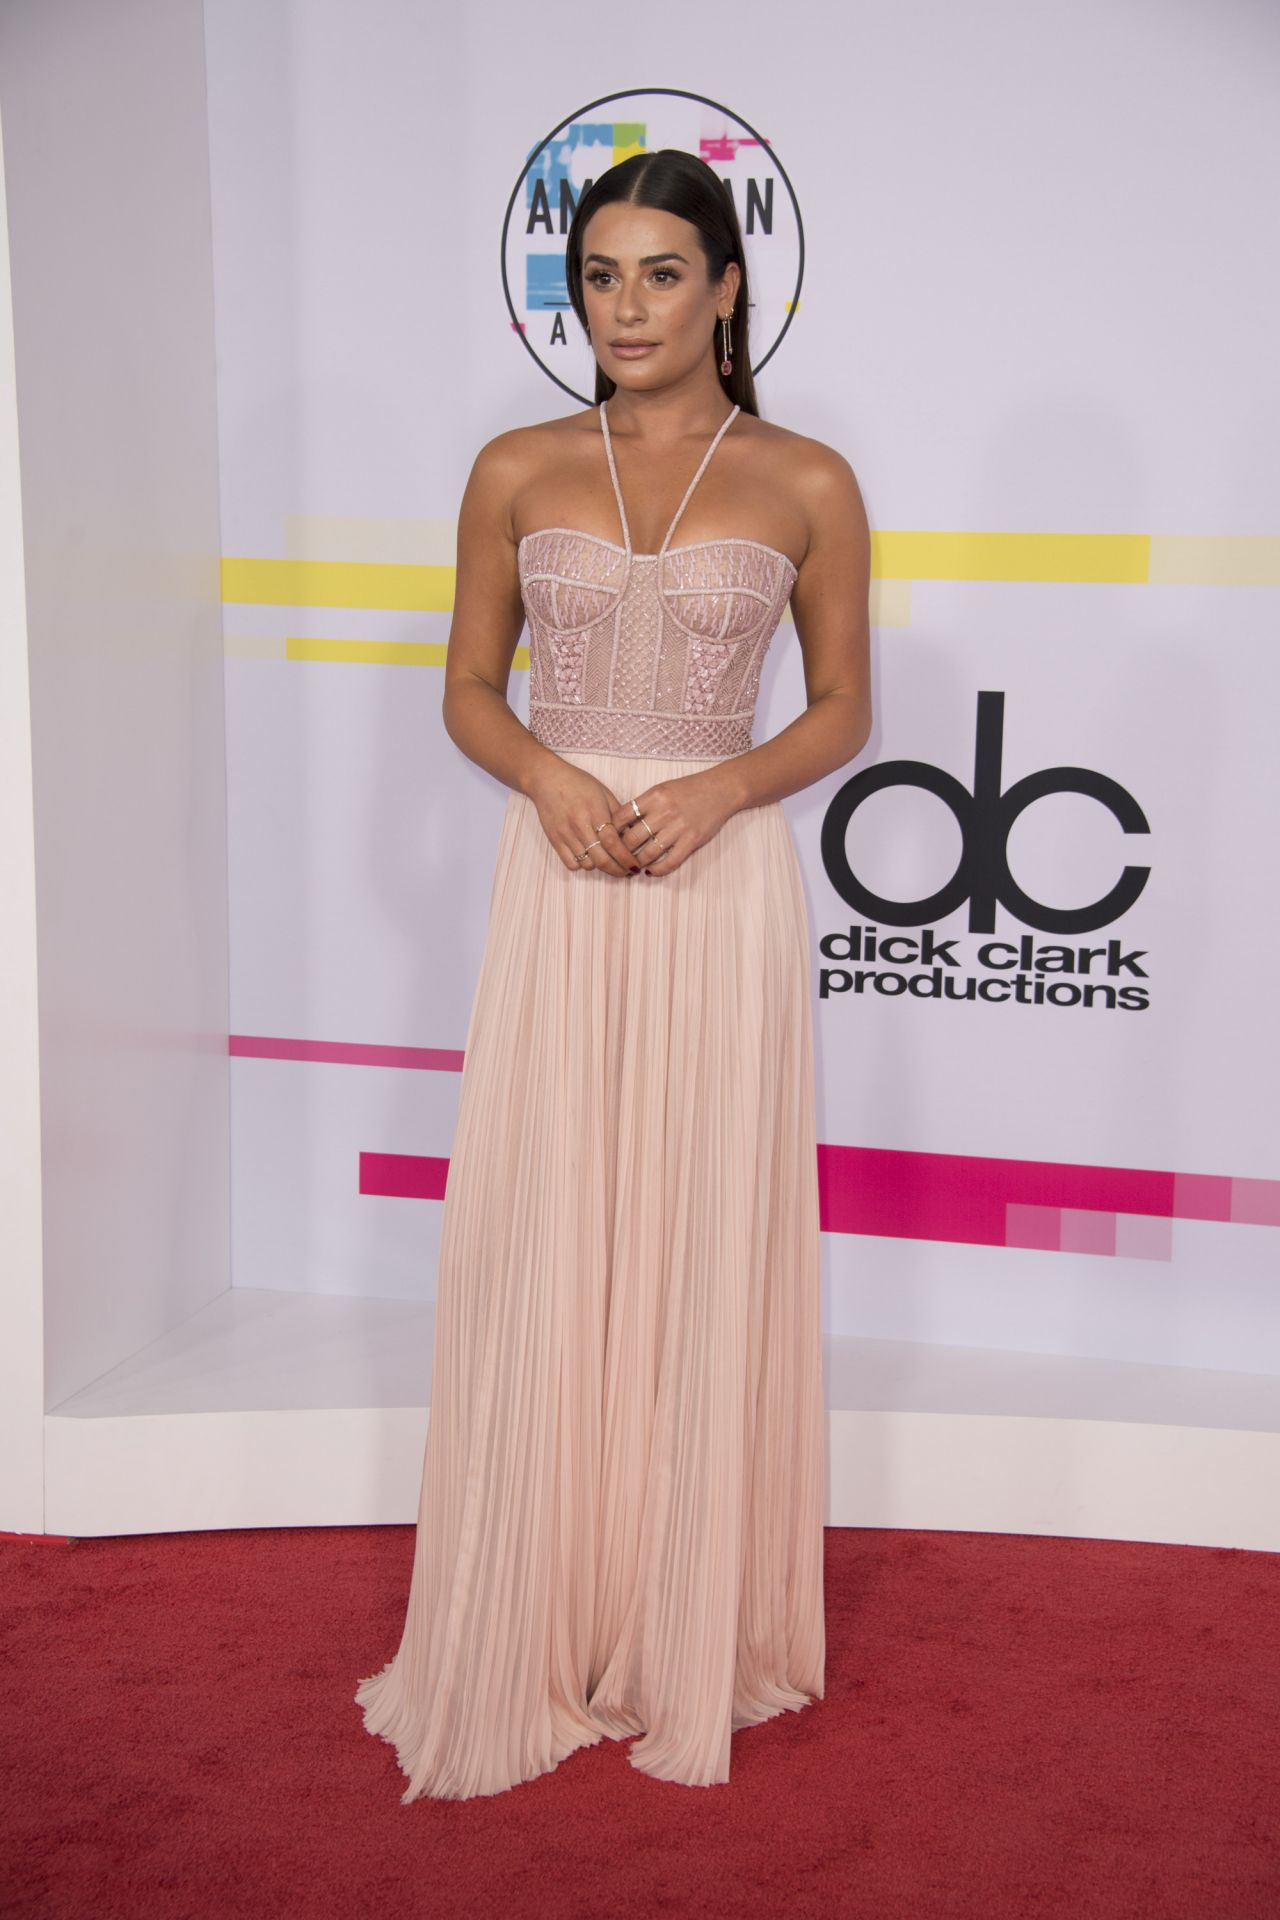 http://celebmafia.com/wp-content/uploads/2017/11/lea-michele-american-music-awards-2017-in-los-angeles-3.jpg